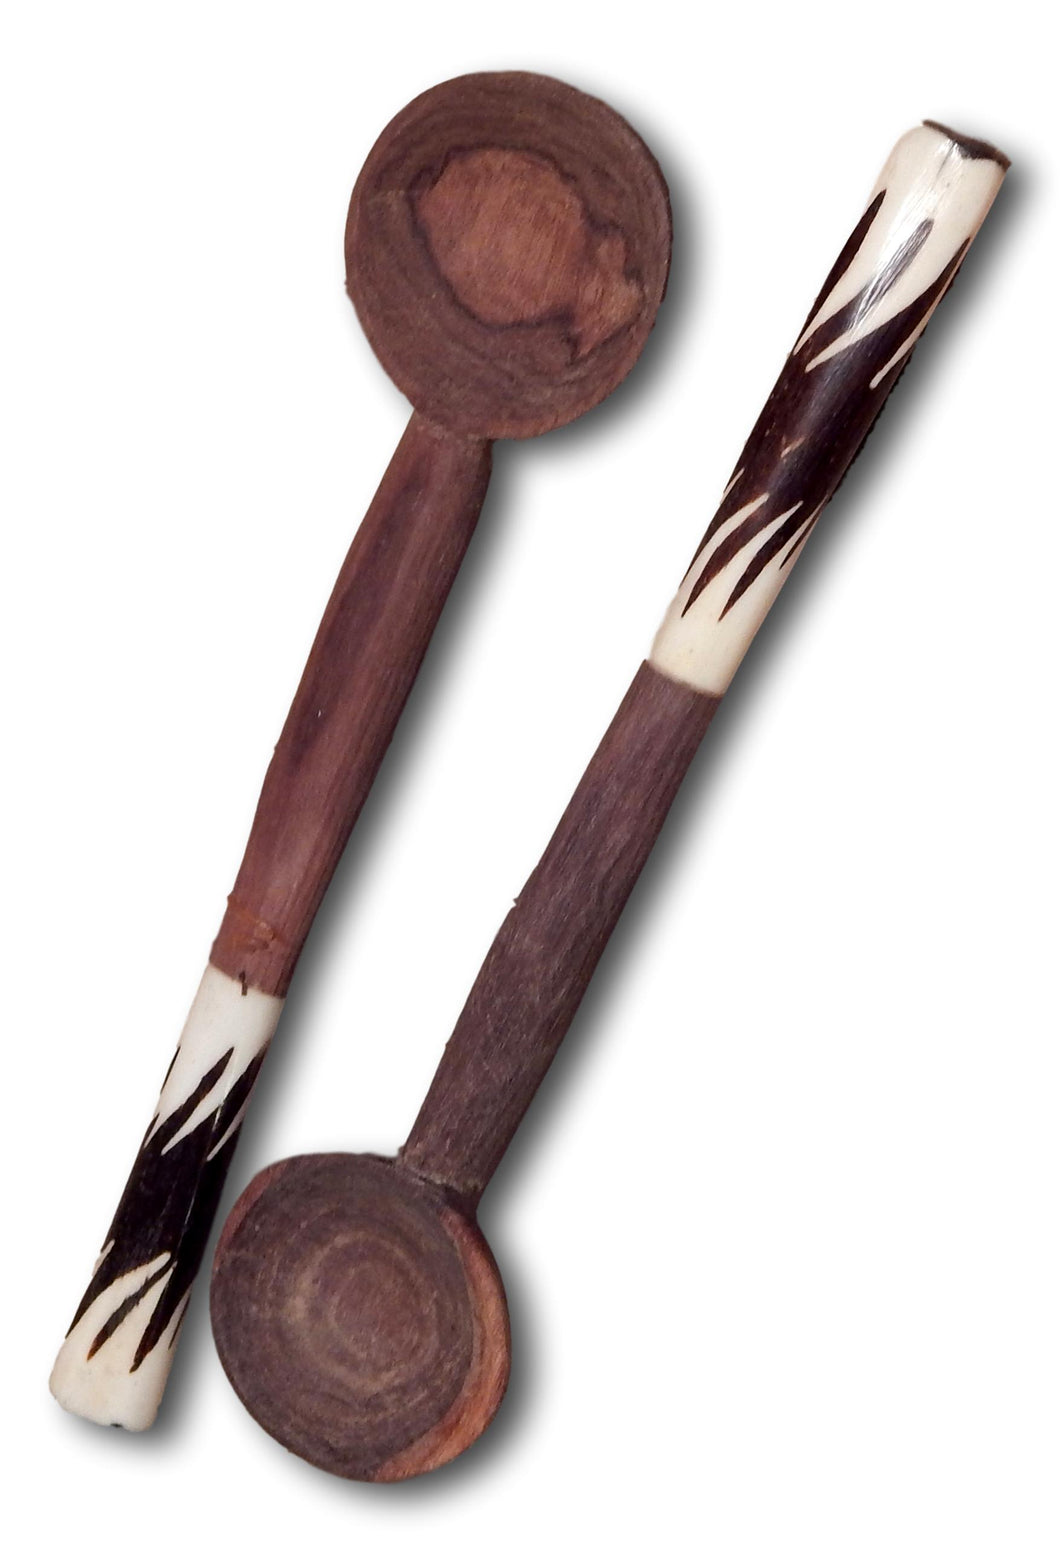 Wood spoon set handcrafted from Teak wood